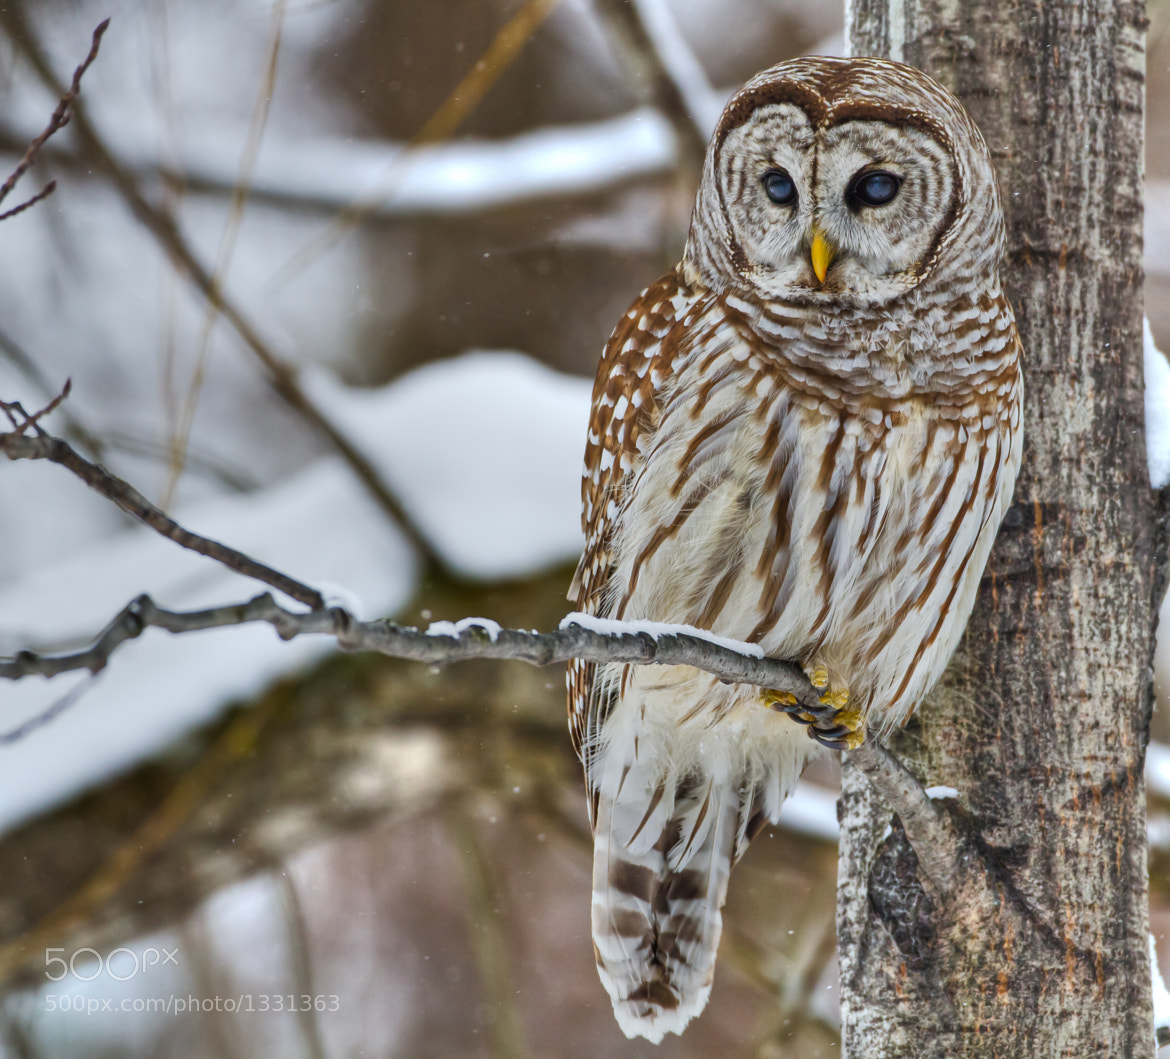 Photograph The eyes by Daniel Gelinas on 500px